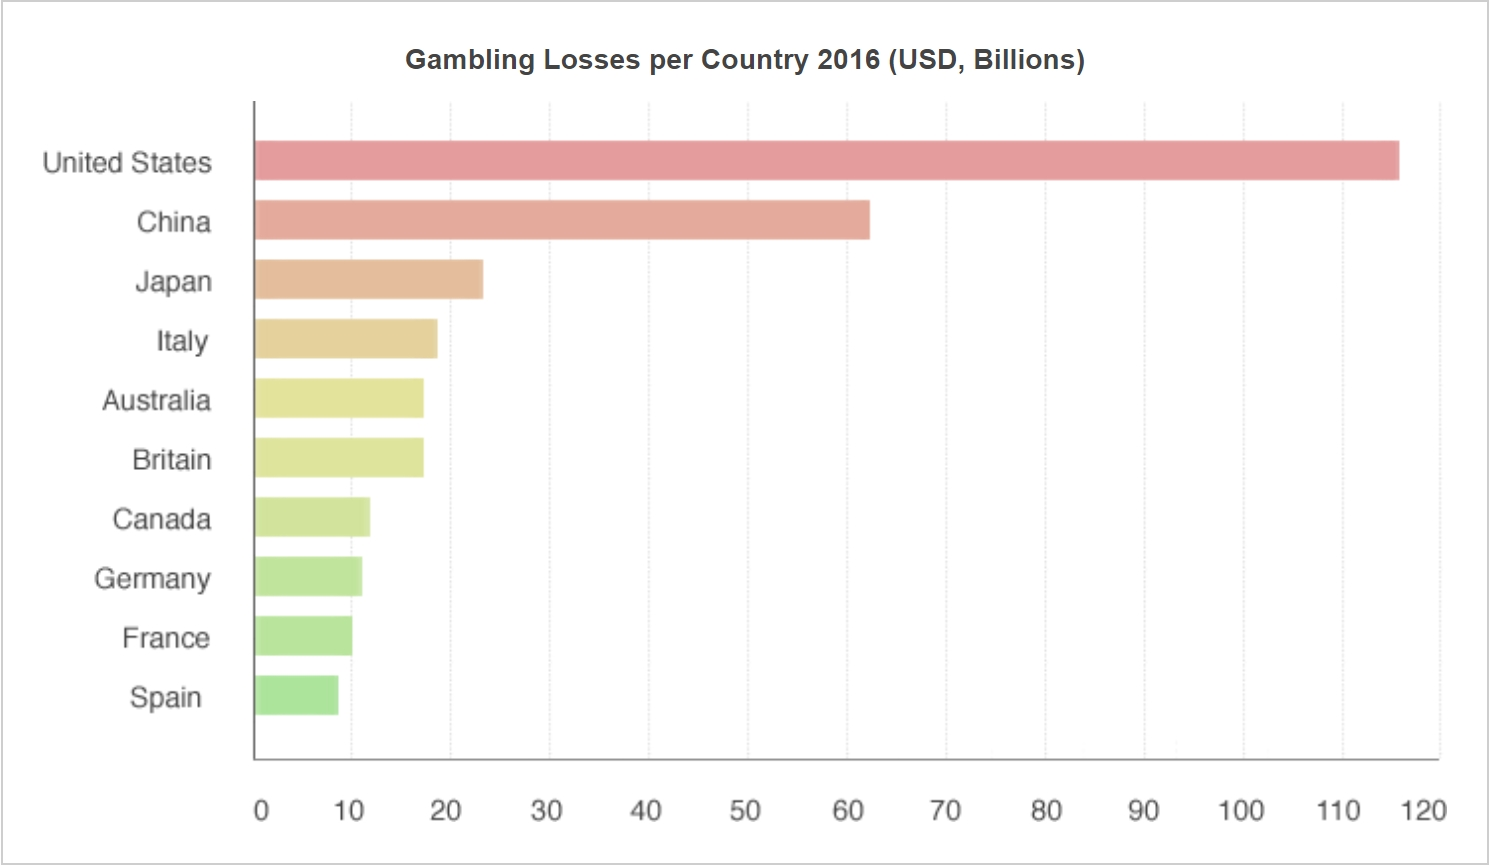 gambling-losses-per-country-2016